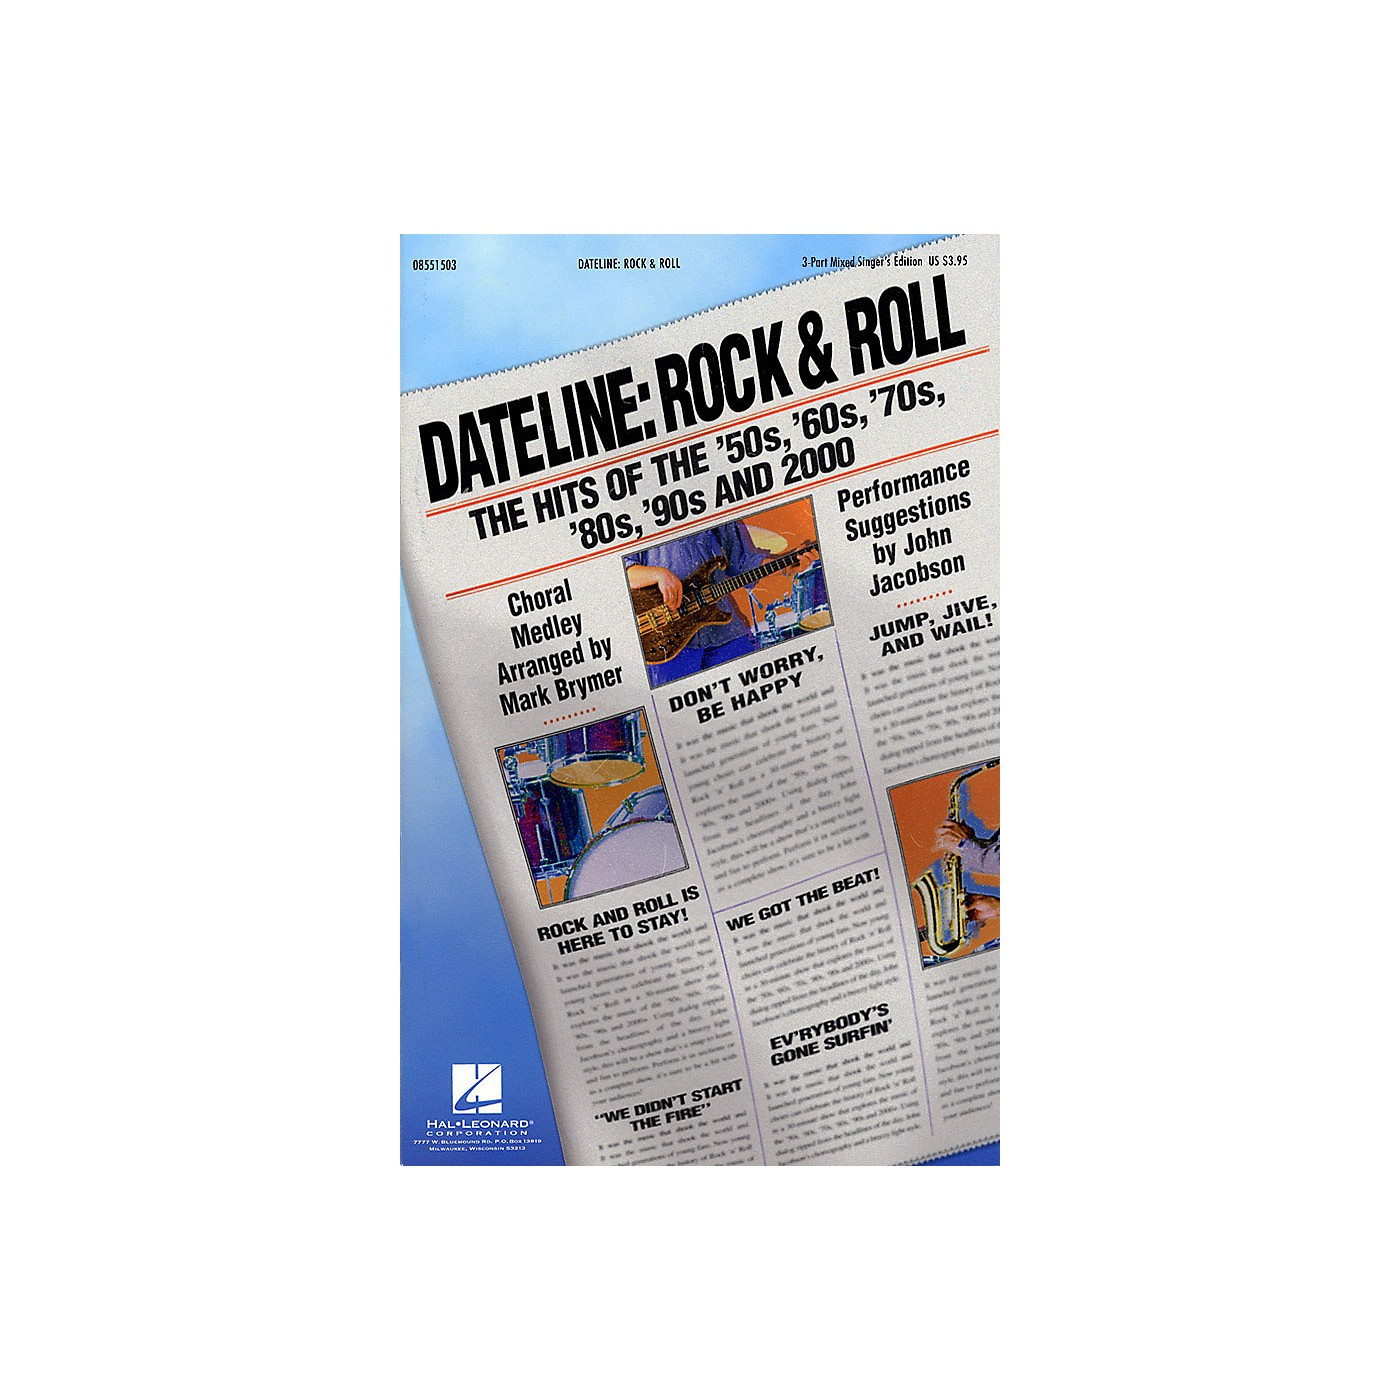 Hal Leonard Dateline: Rock & Roll - Hits of the '50s, '60s, '70s, '80s, '90s and 2000 (Medley) ShwTrx CD by Brymer thumbnail